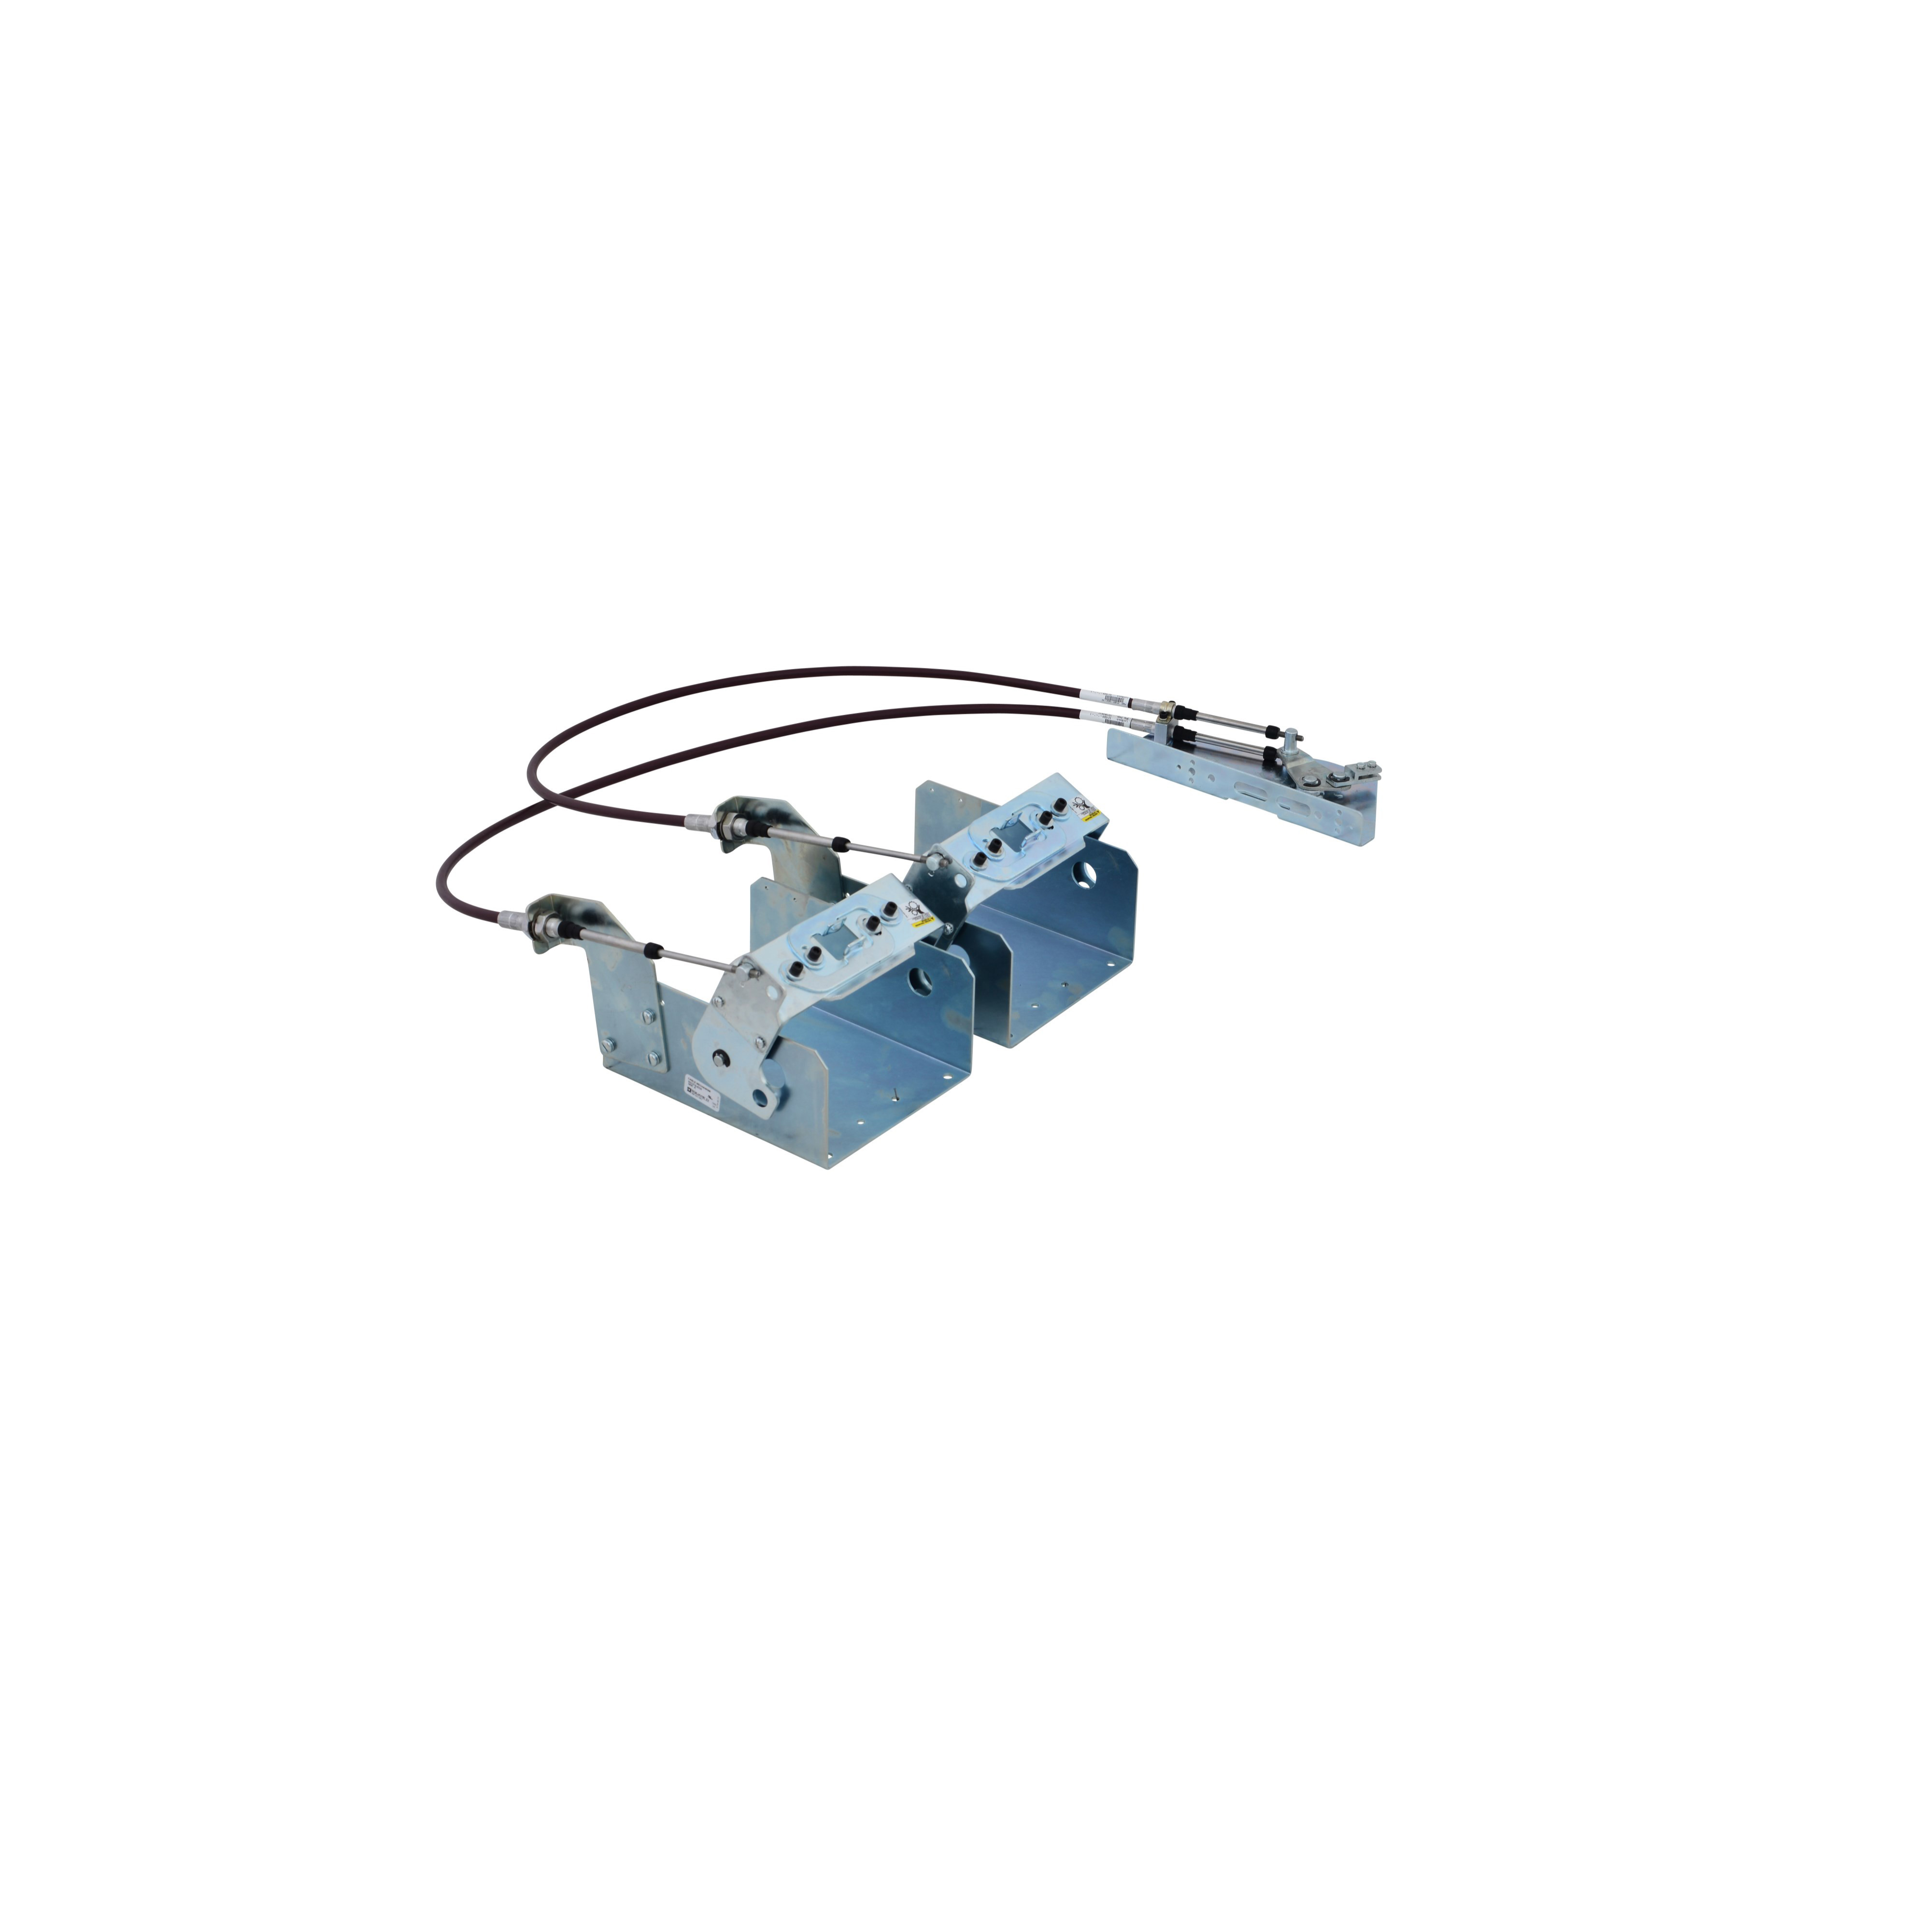 SQUARE D Dual cable operating mechanism, two 60 inch cables, for Compact NSJ and PowerPact D and L